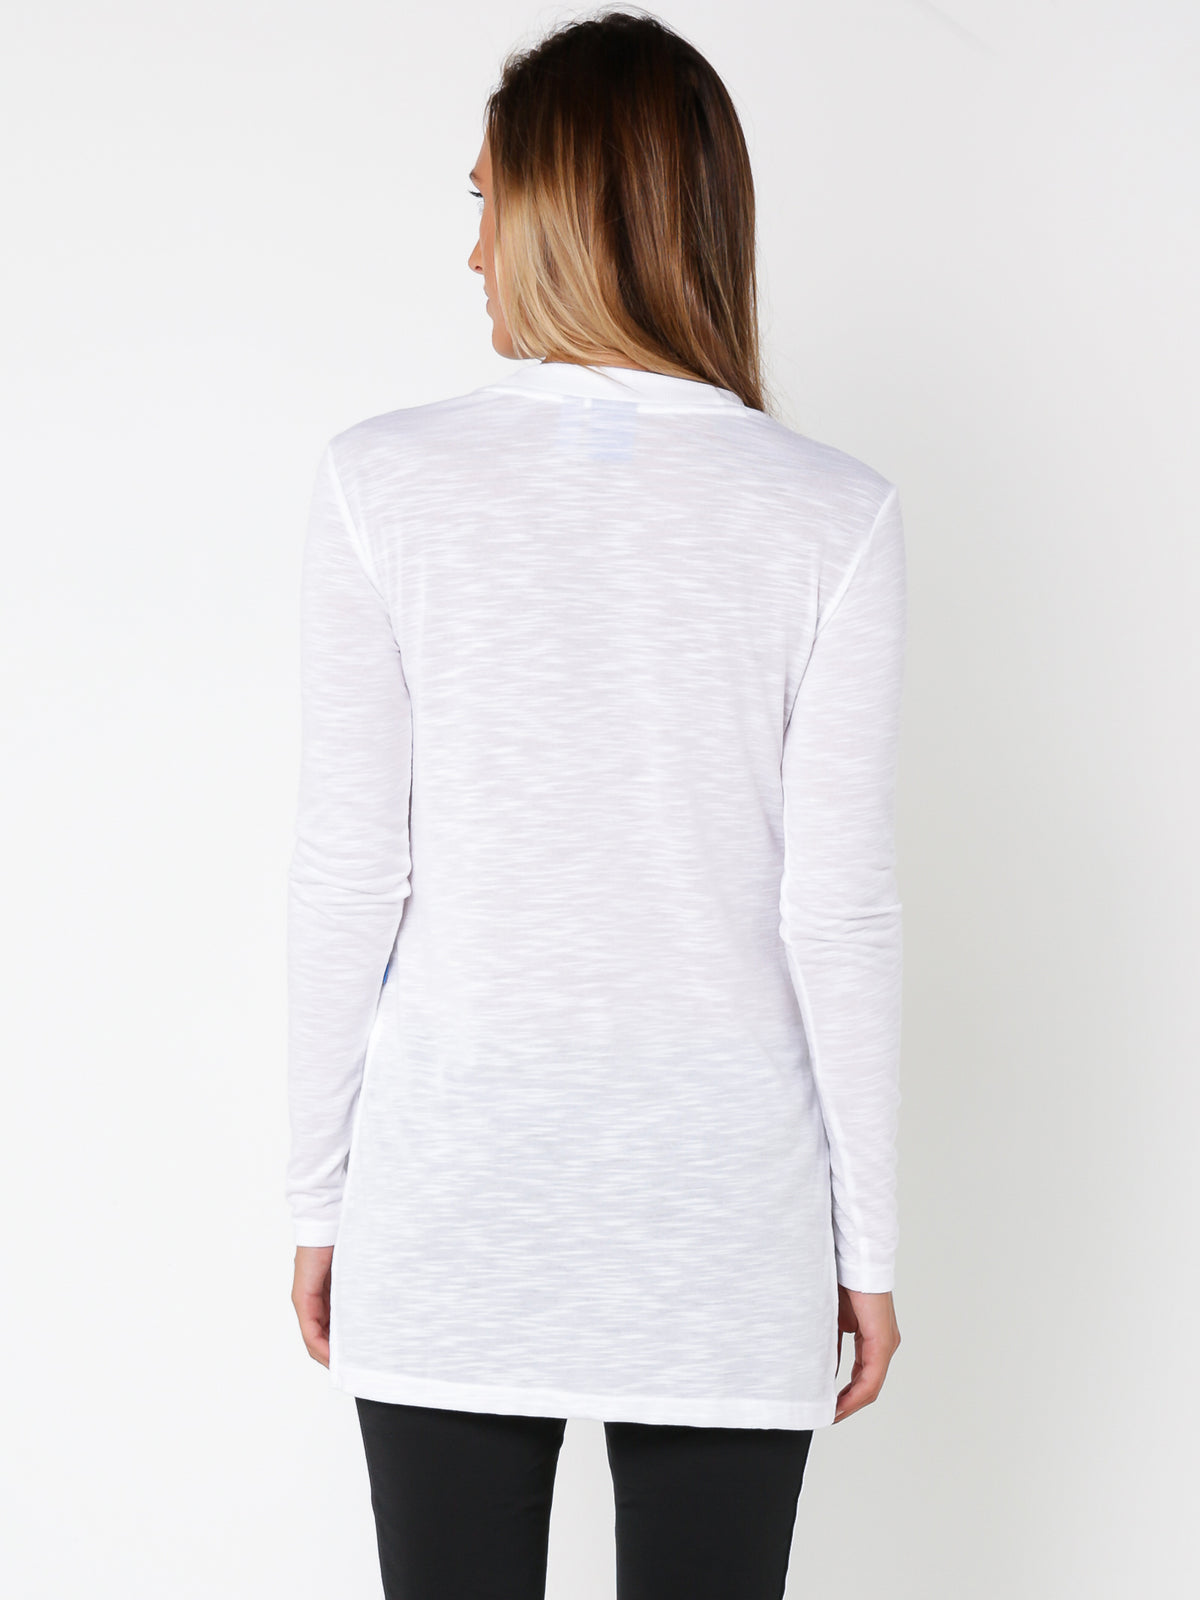 Long Sleeve T-Shirt in White